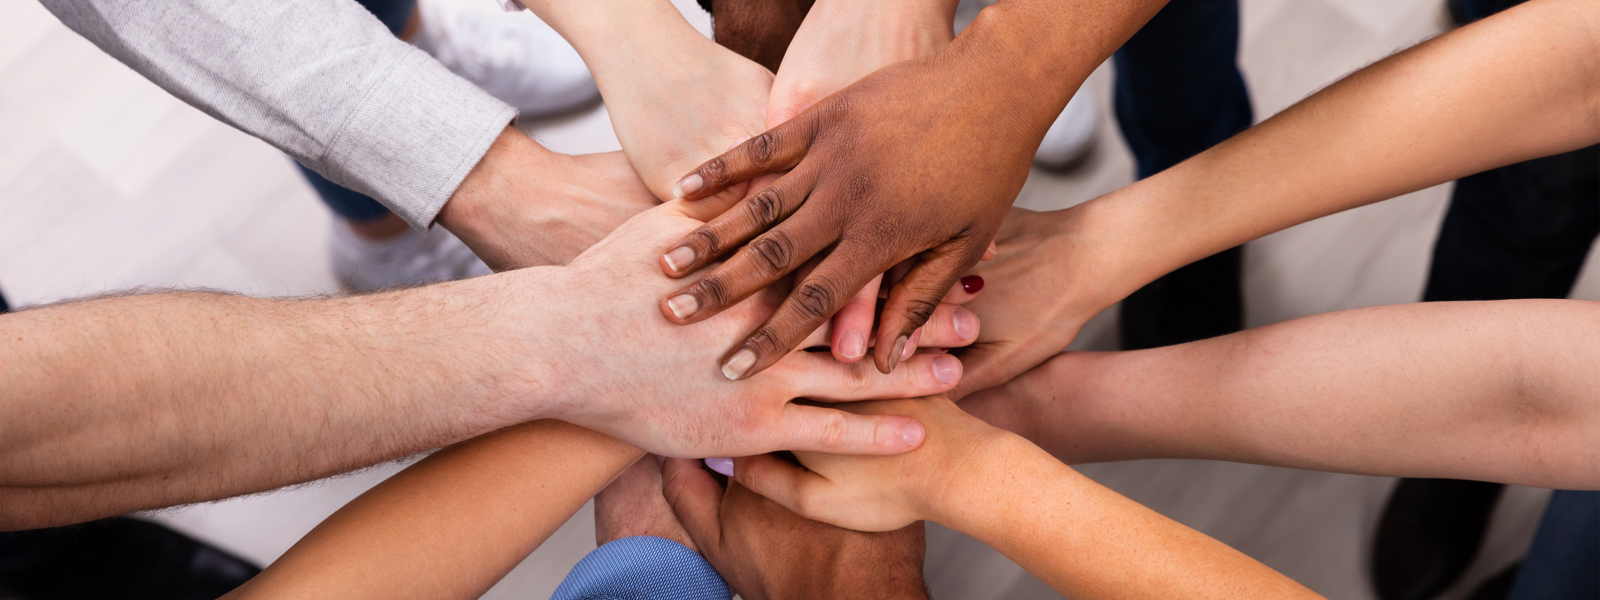 Hands of a diverse group of people